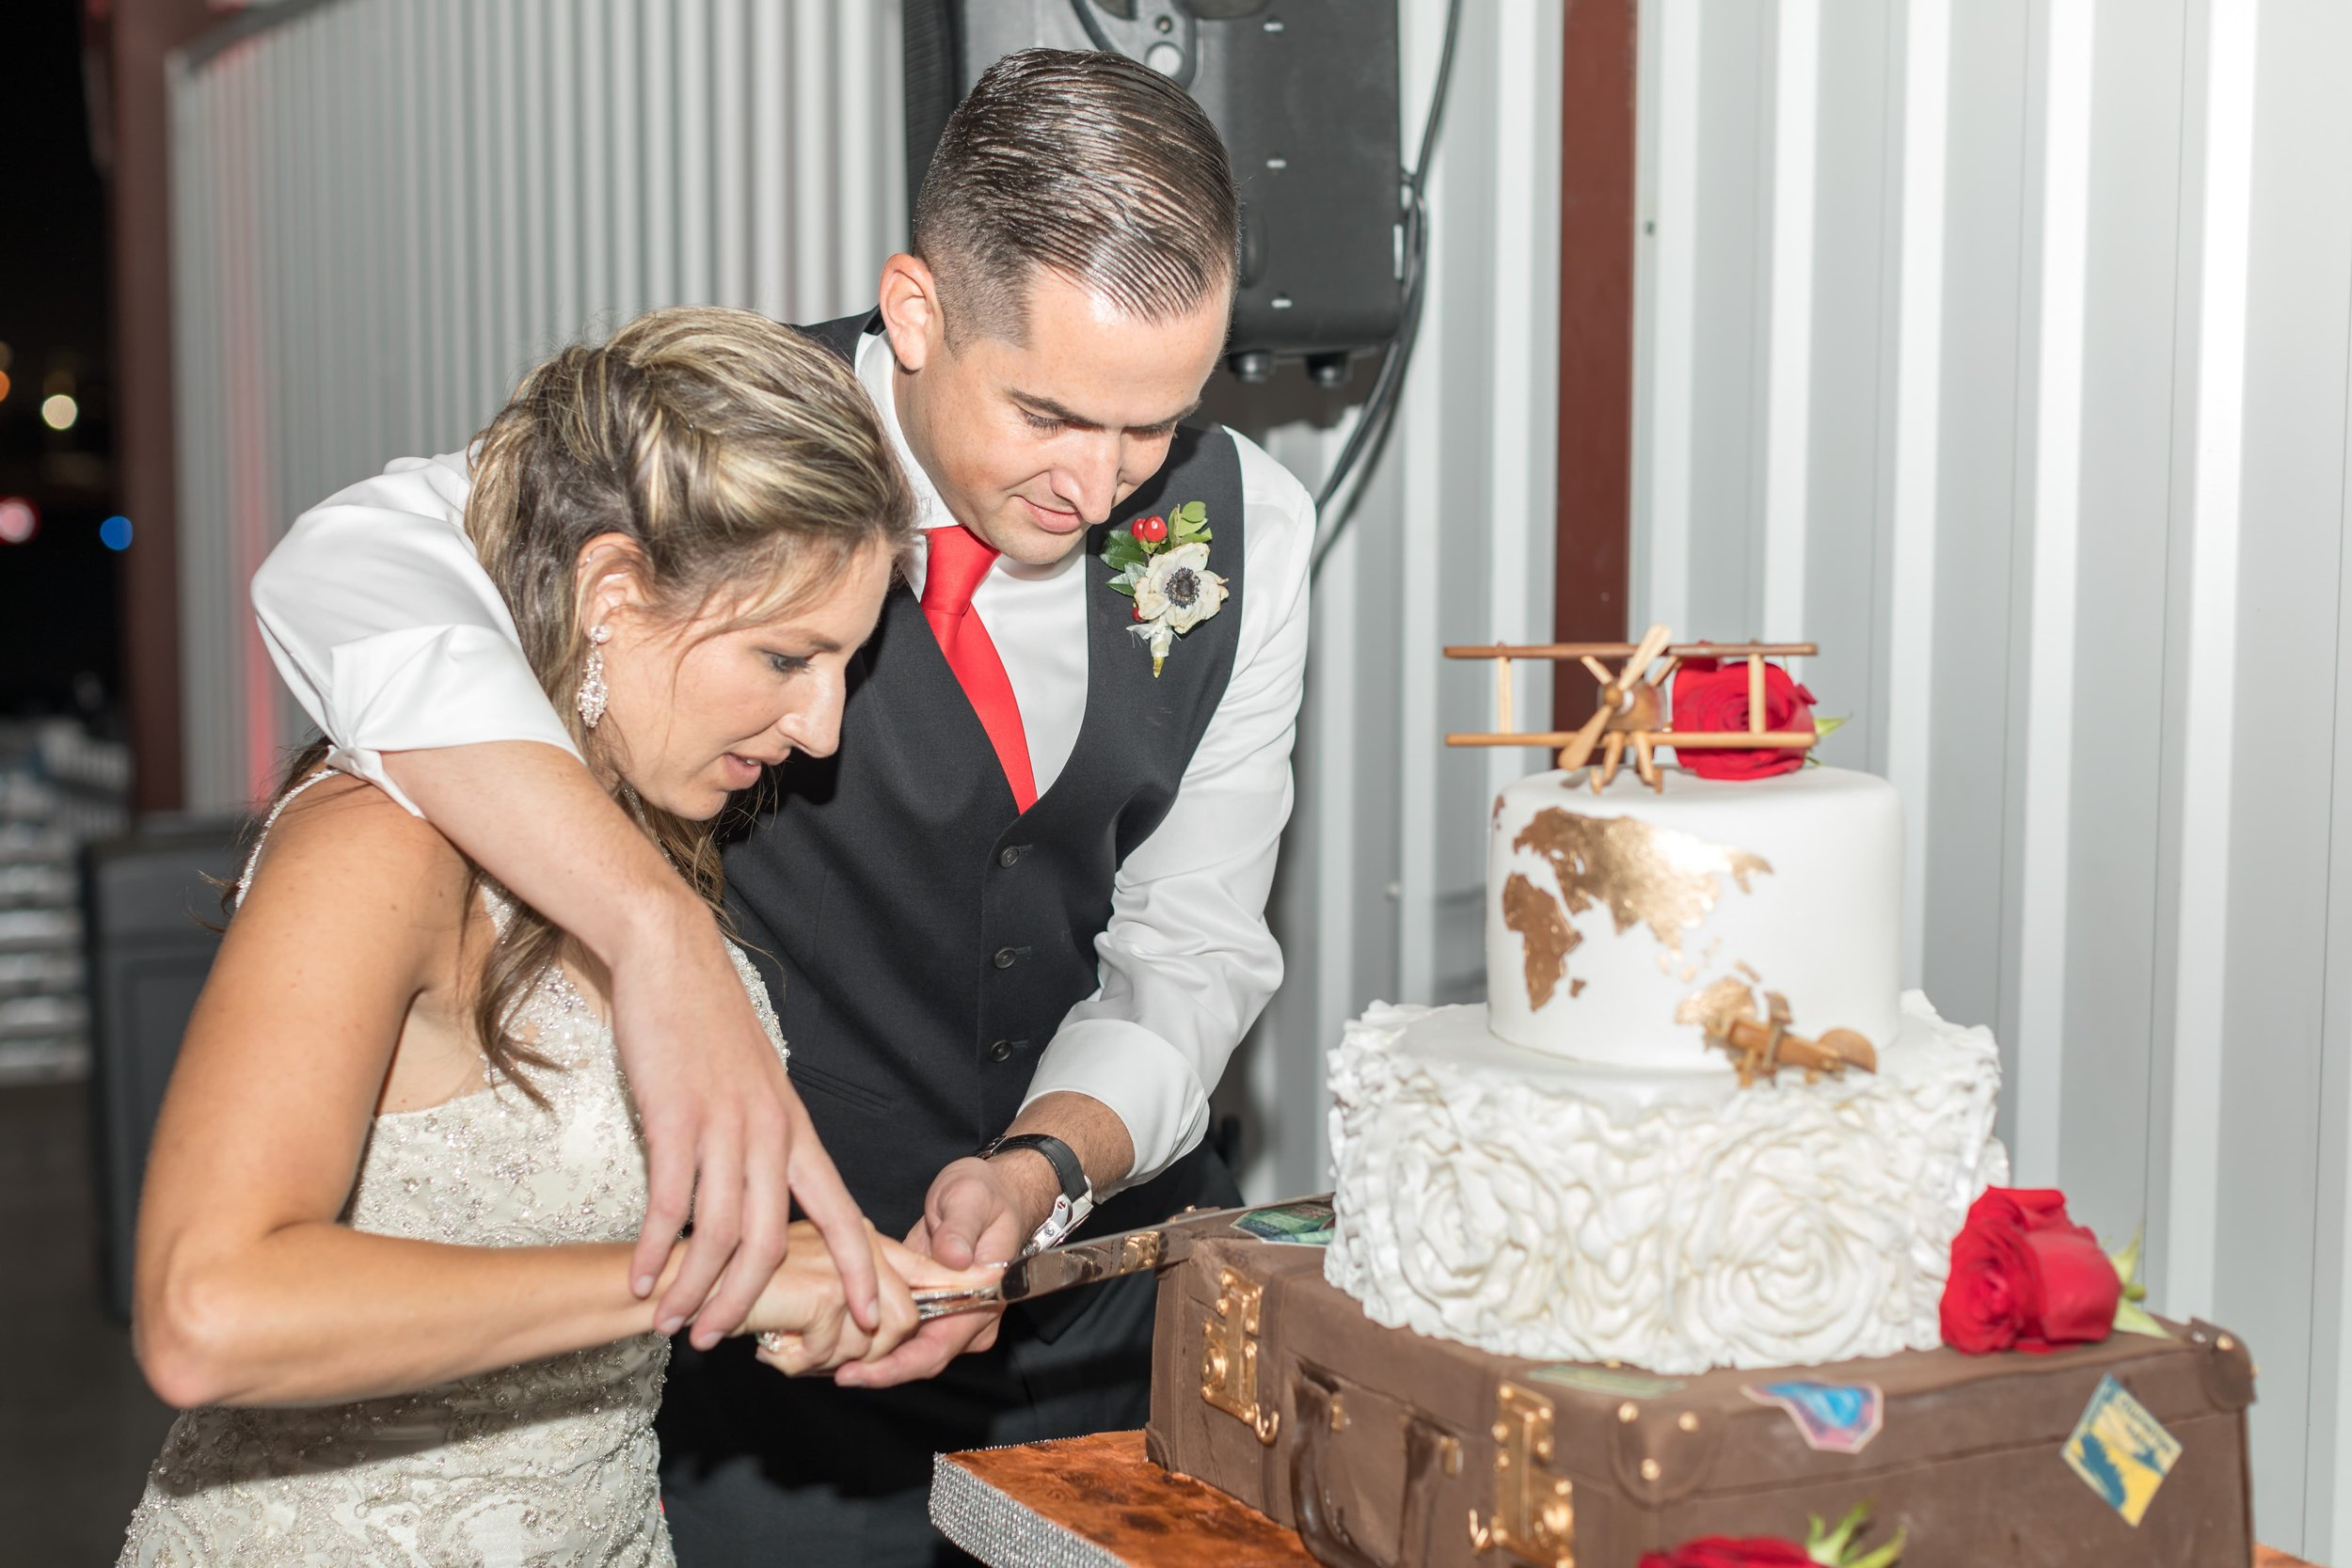 Bride and groom cutting their aviation themed wedding cake.